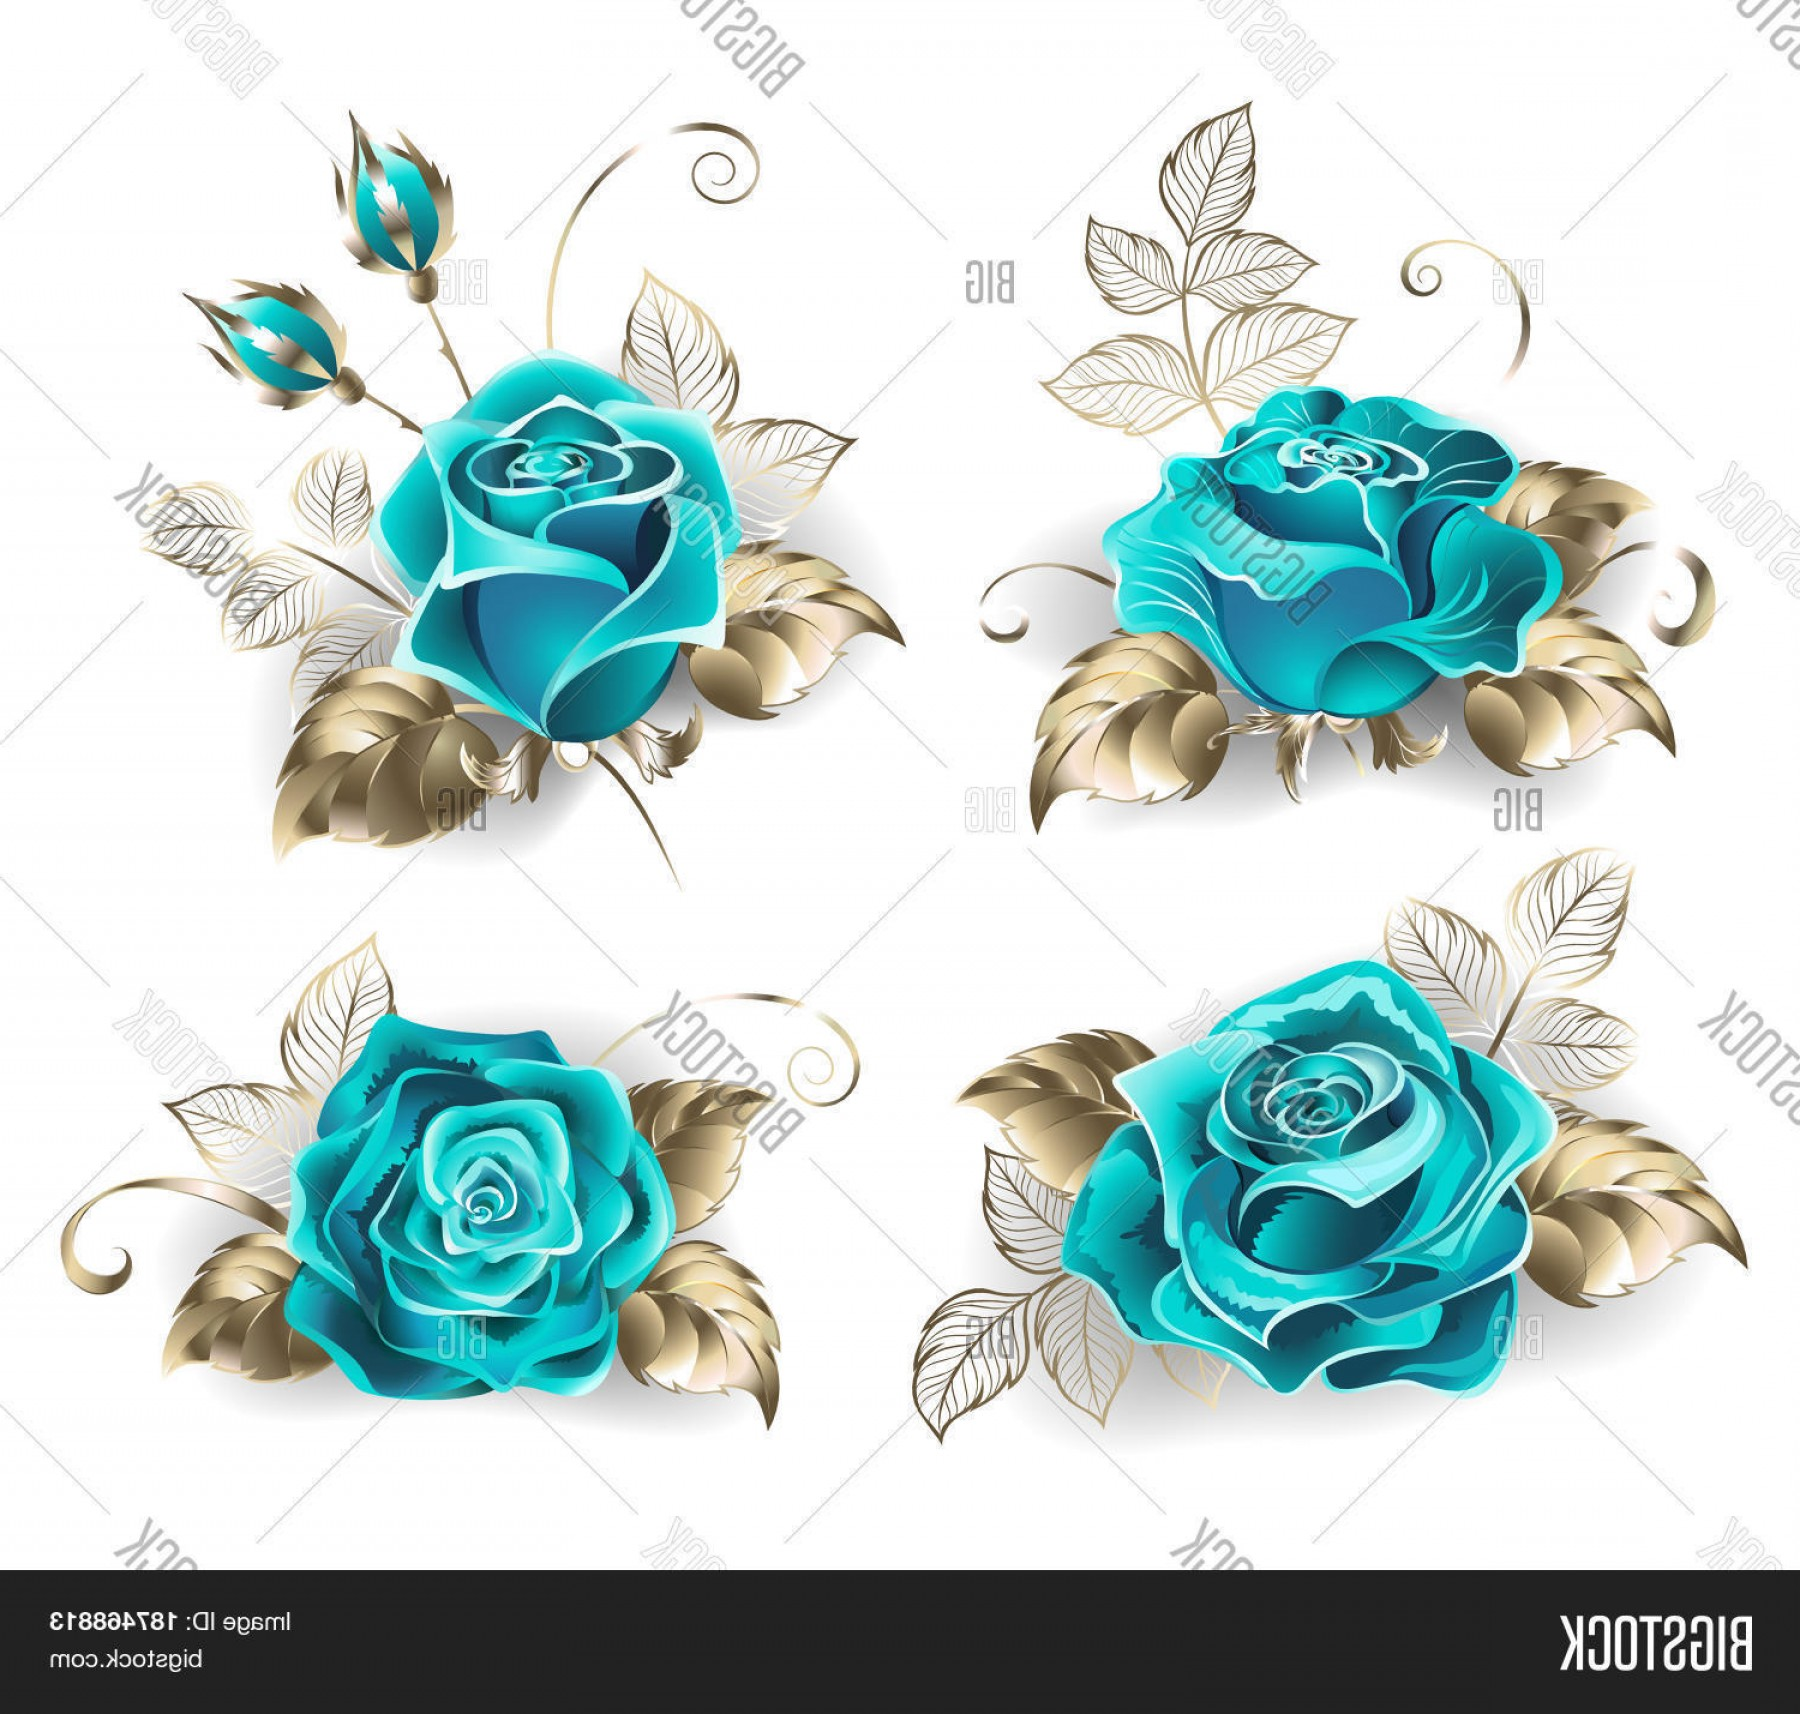 Gold And Blue Flower Vector: Stock Vector Set Of Turquoise Rosesc With Leaves Of White Gold On A White Background Blue Tiffany Fashionable Color Turquoise Rose